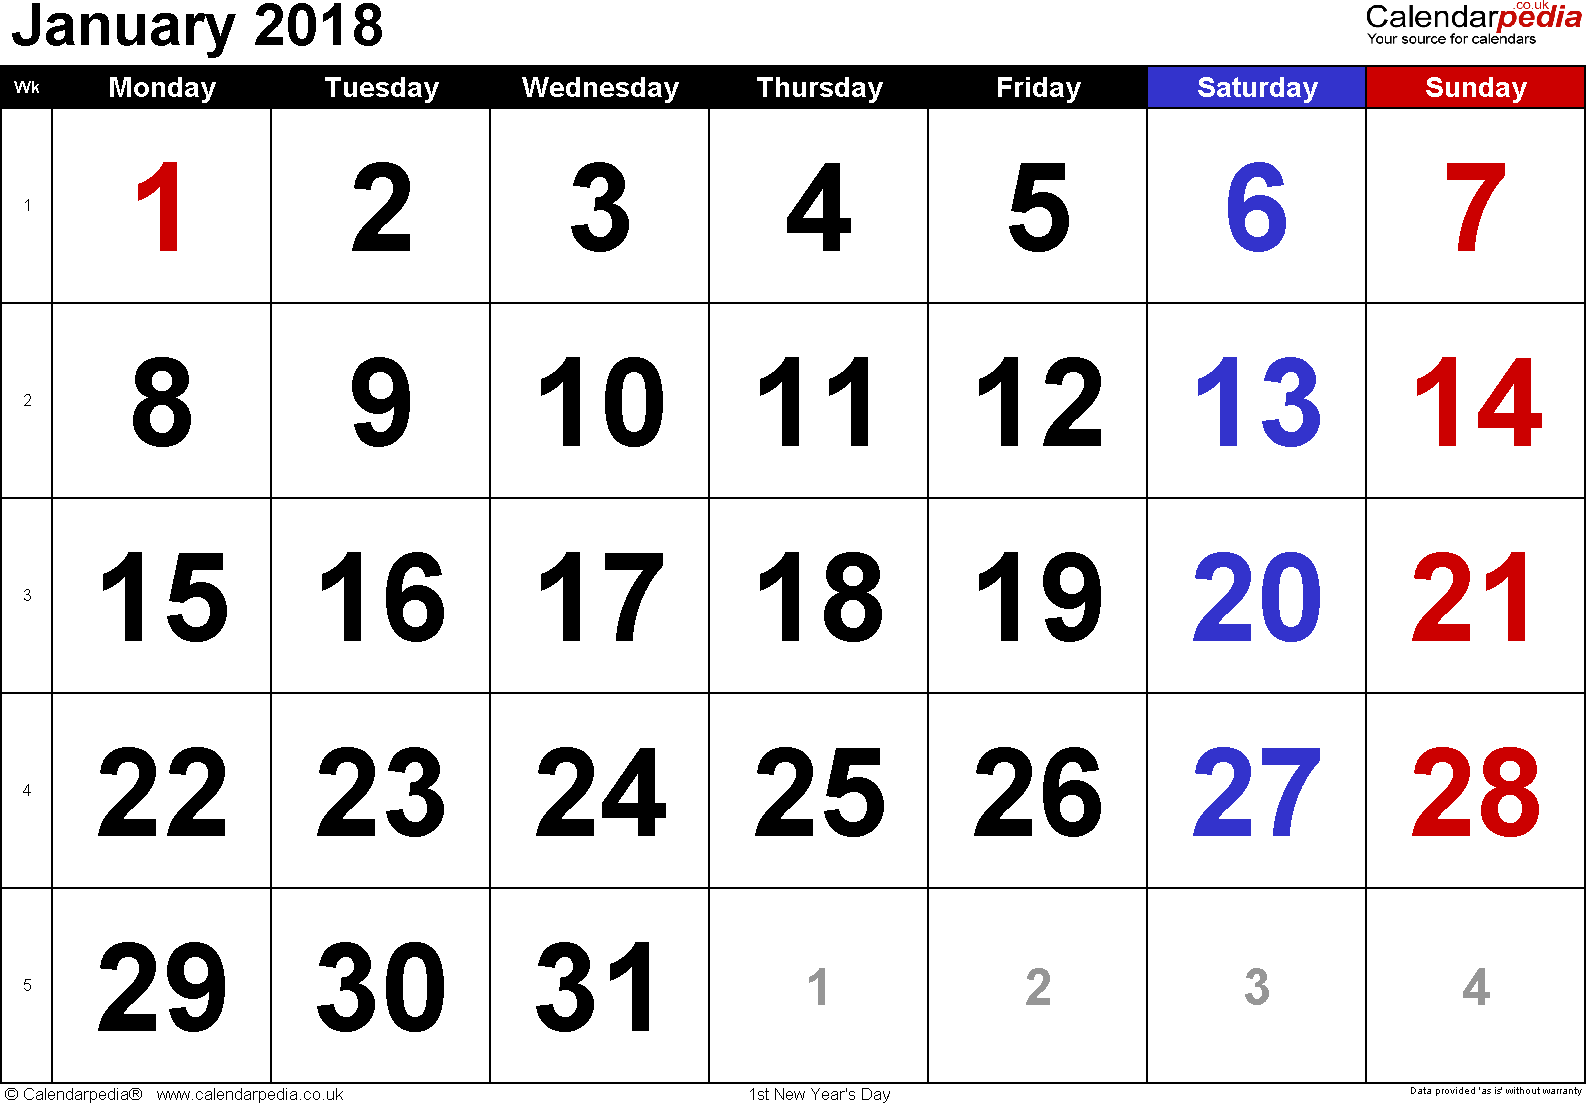 Calendar January 2018, landscape orientation, large numerals, 1 page, with UK bank holidays and week numbers